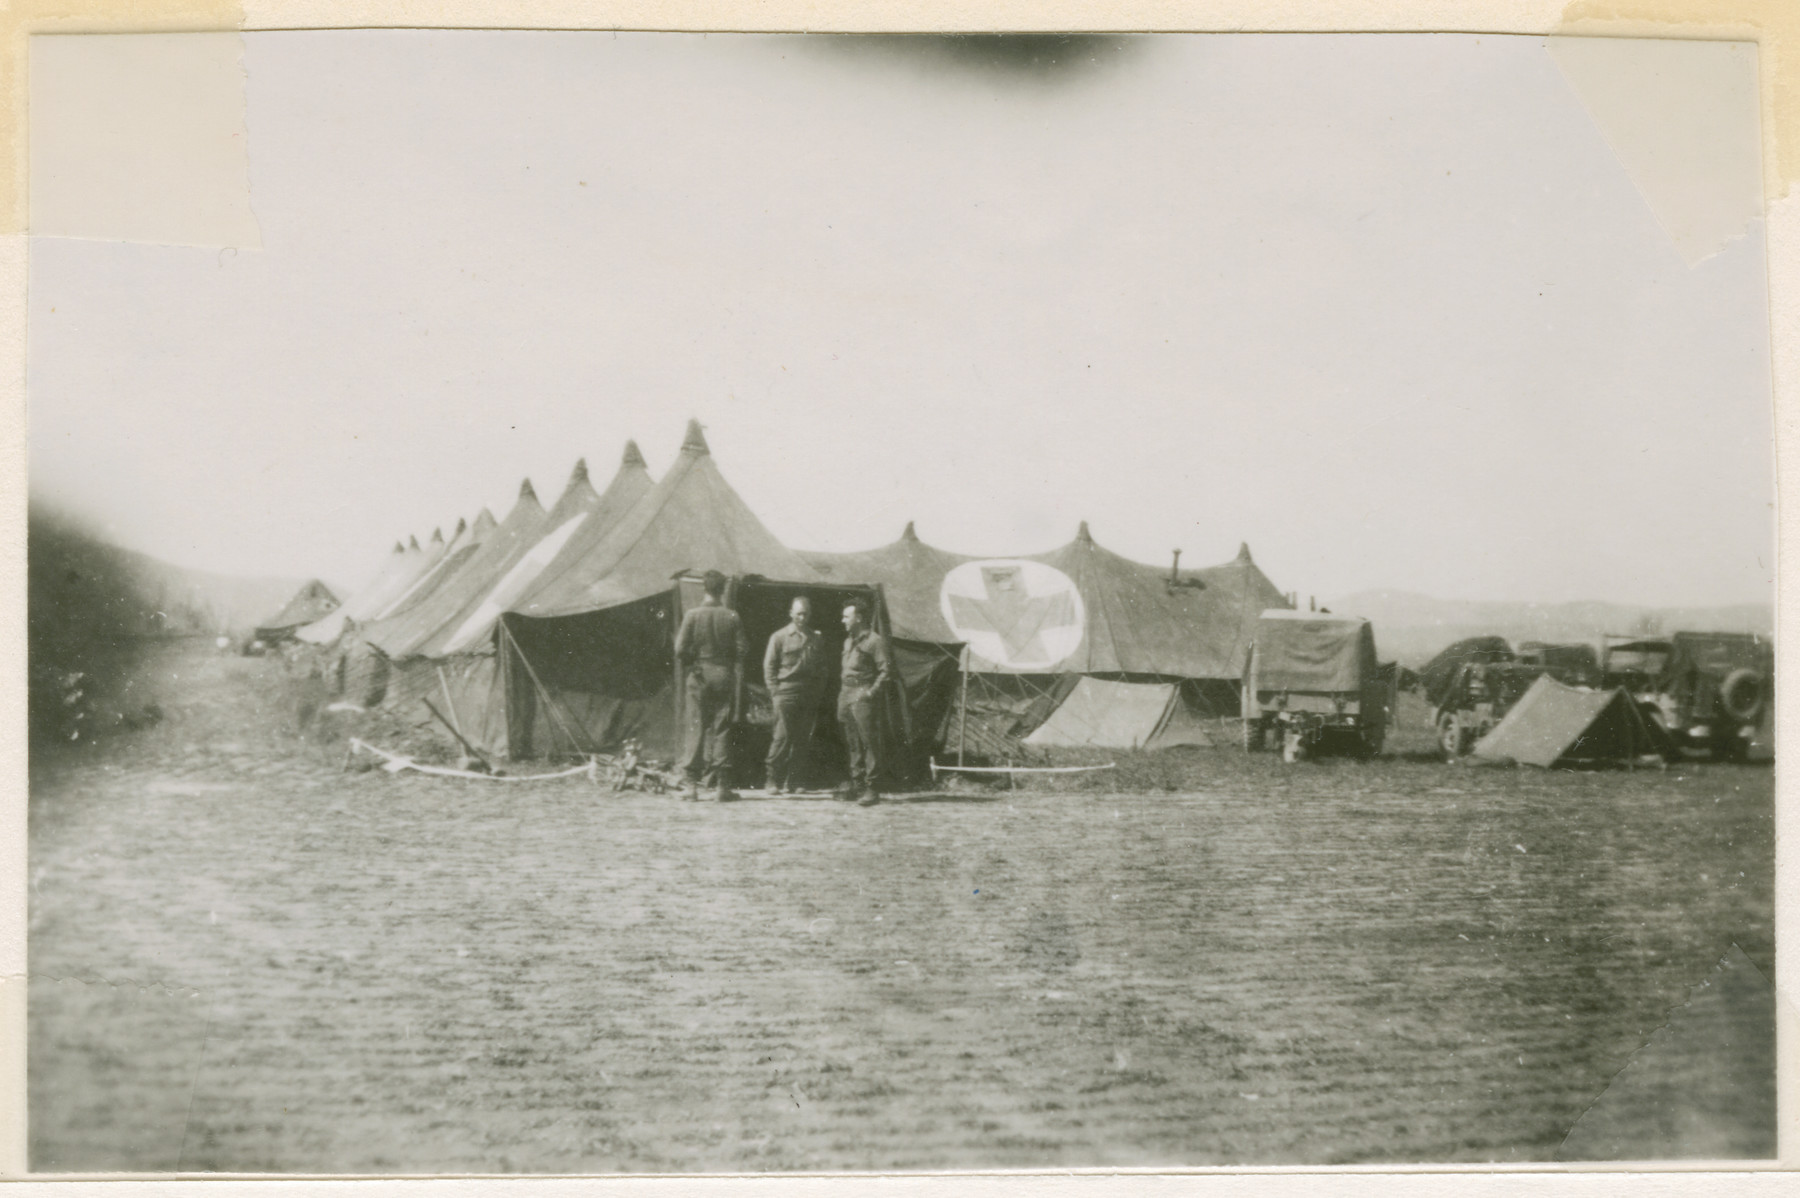 American soldiers and medics stand outside the medical team's tents near the Nordhausen concentration camp,